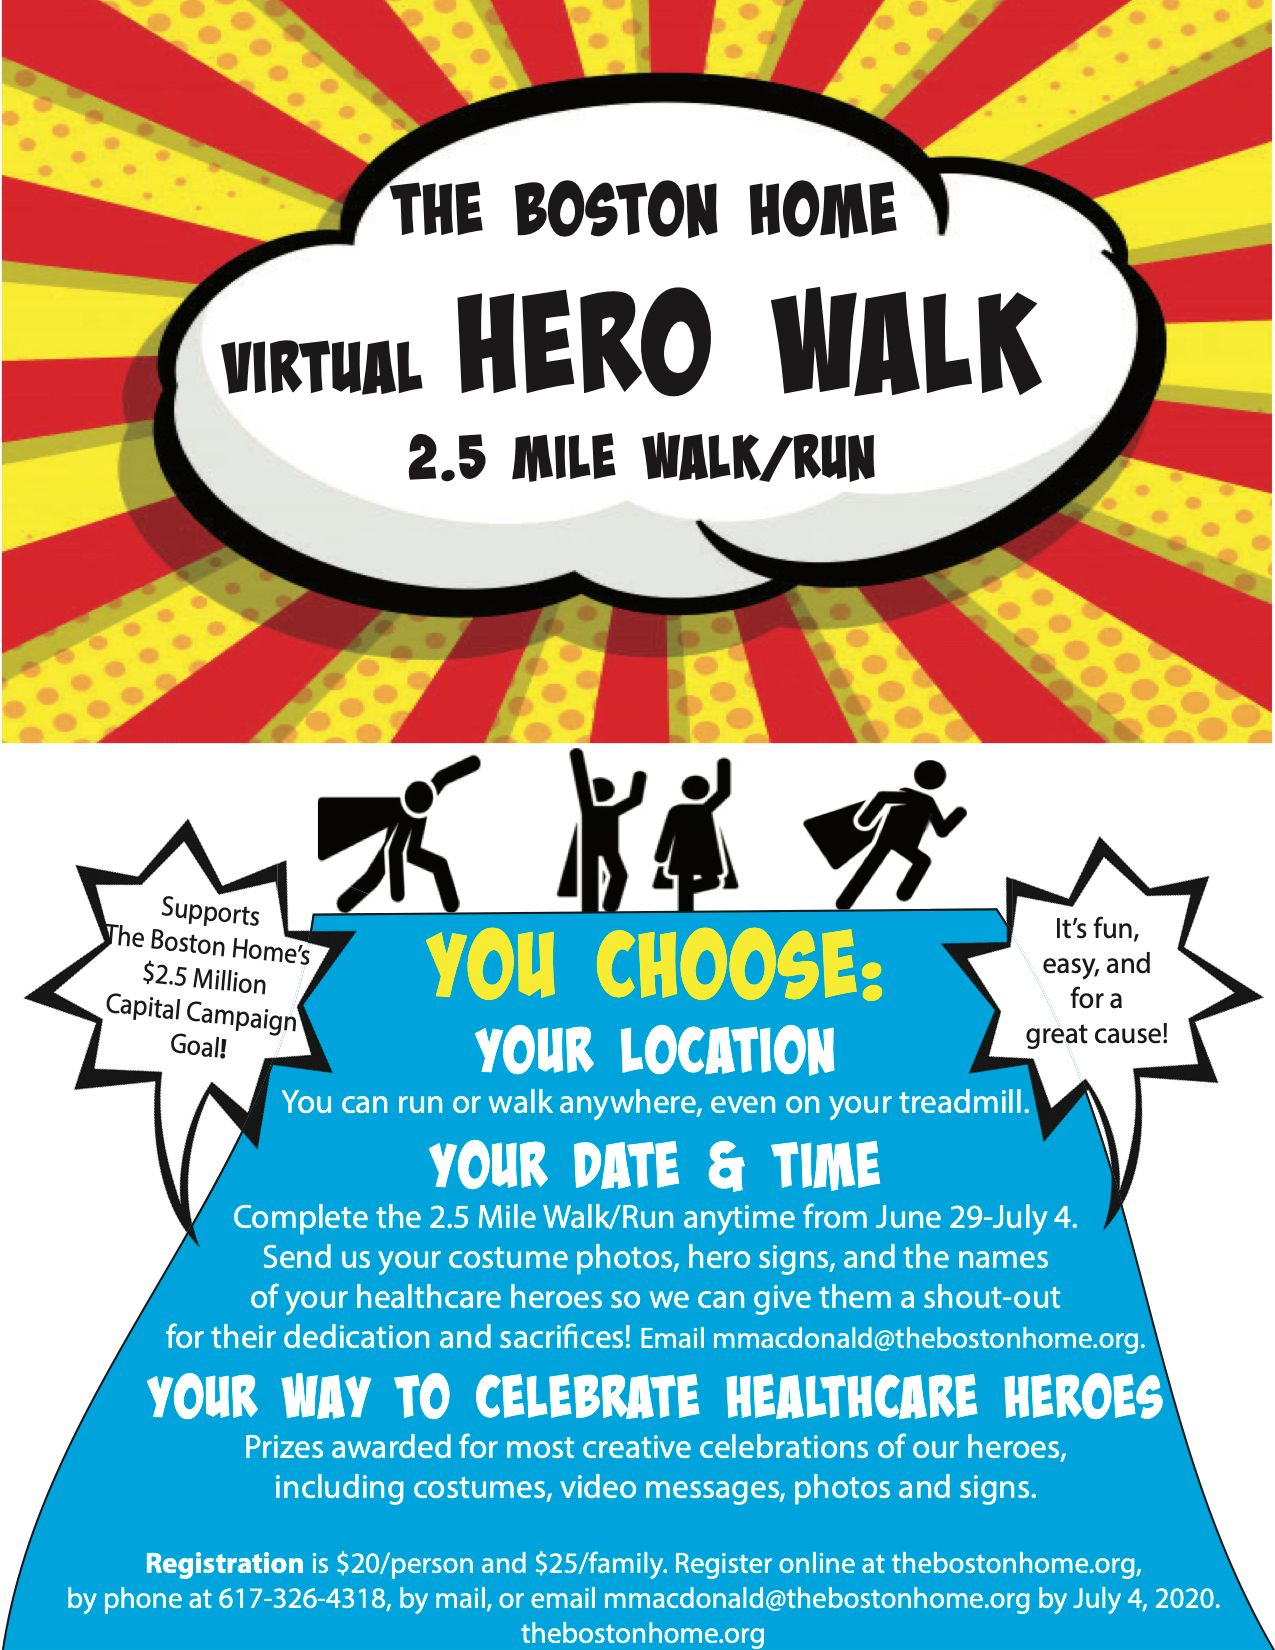 The Boston Home's Virtual Hero Walk